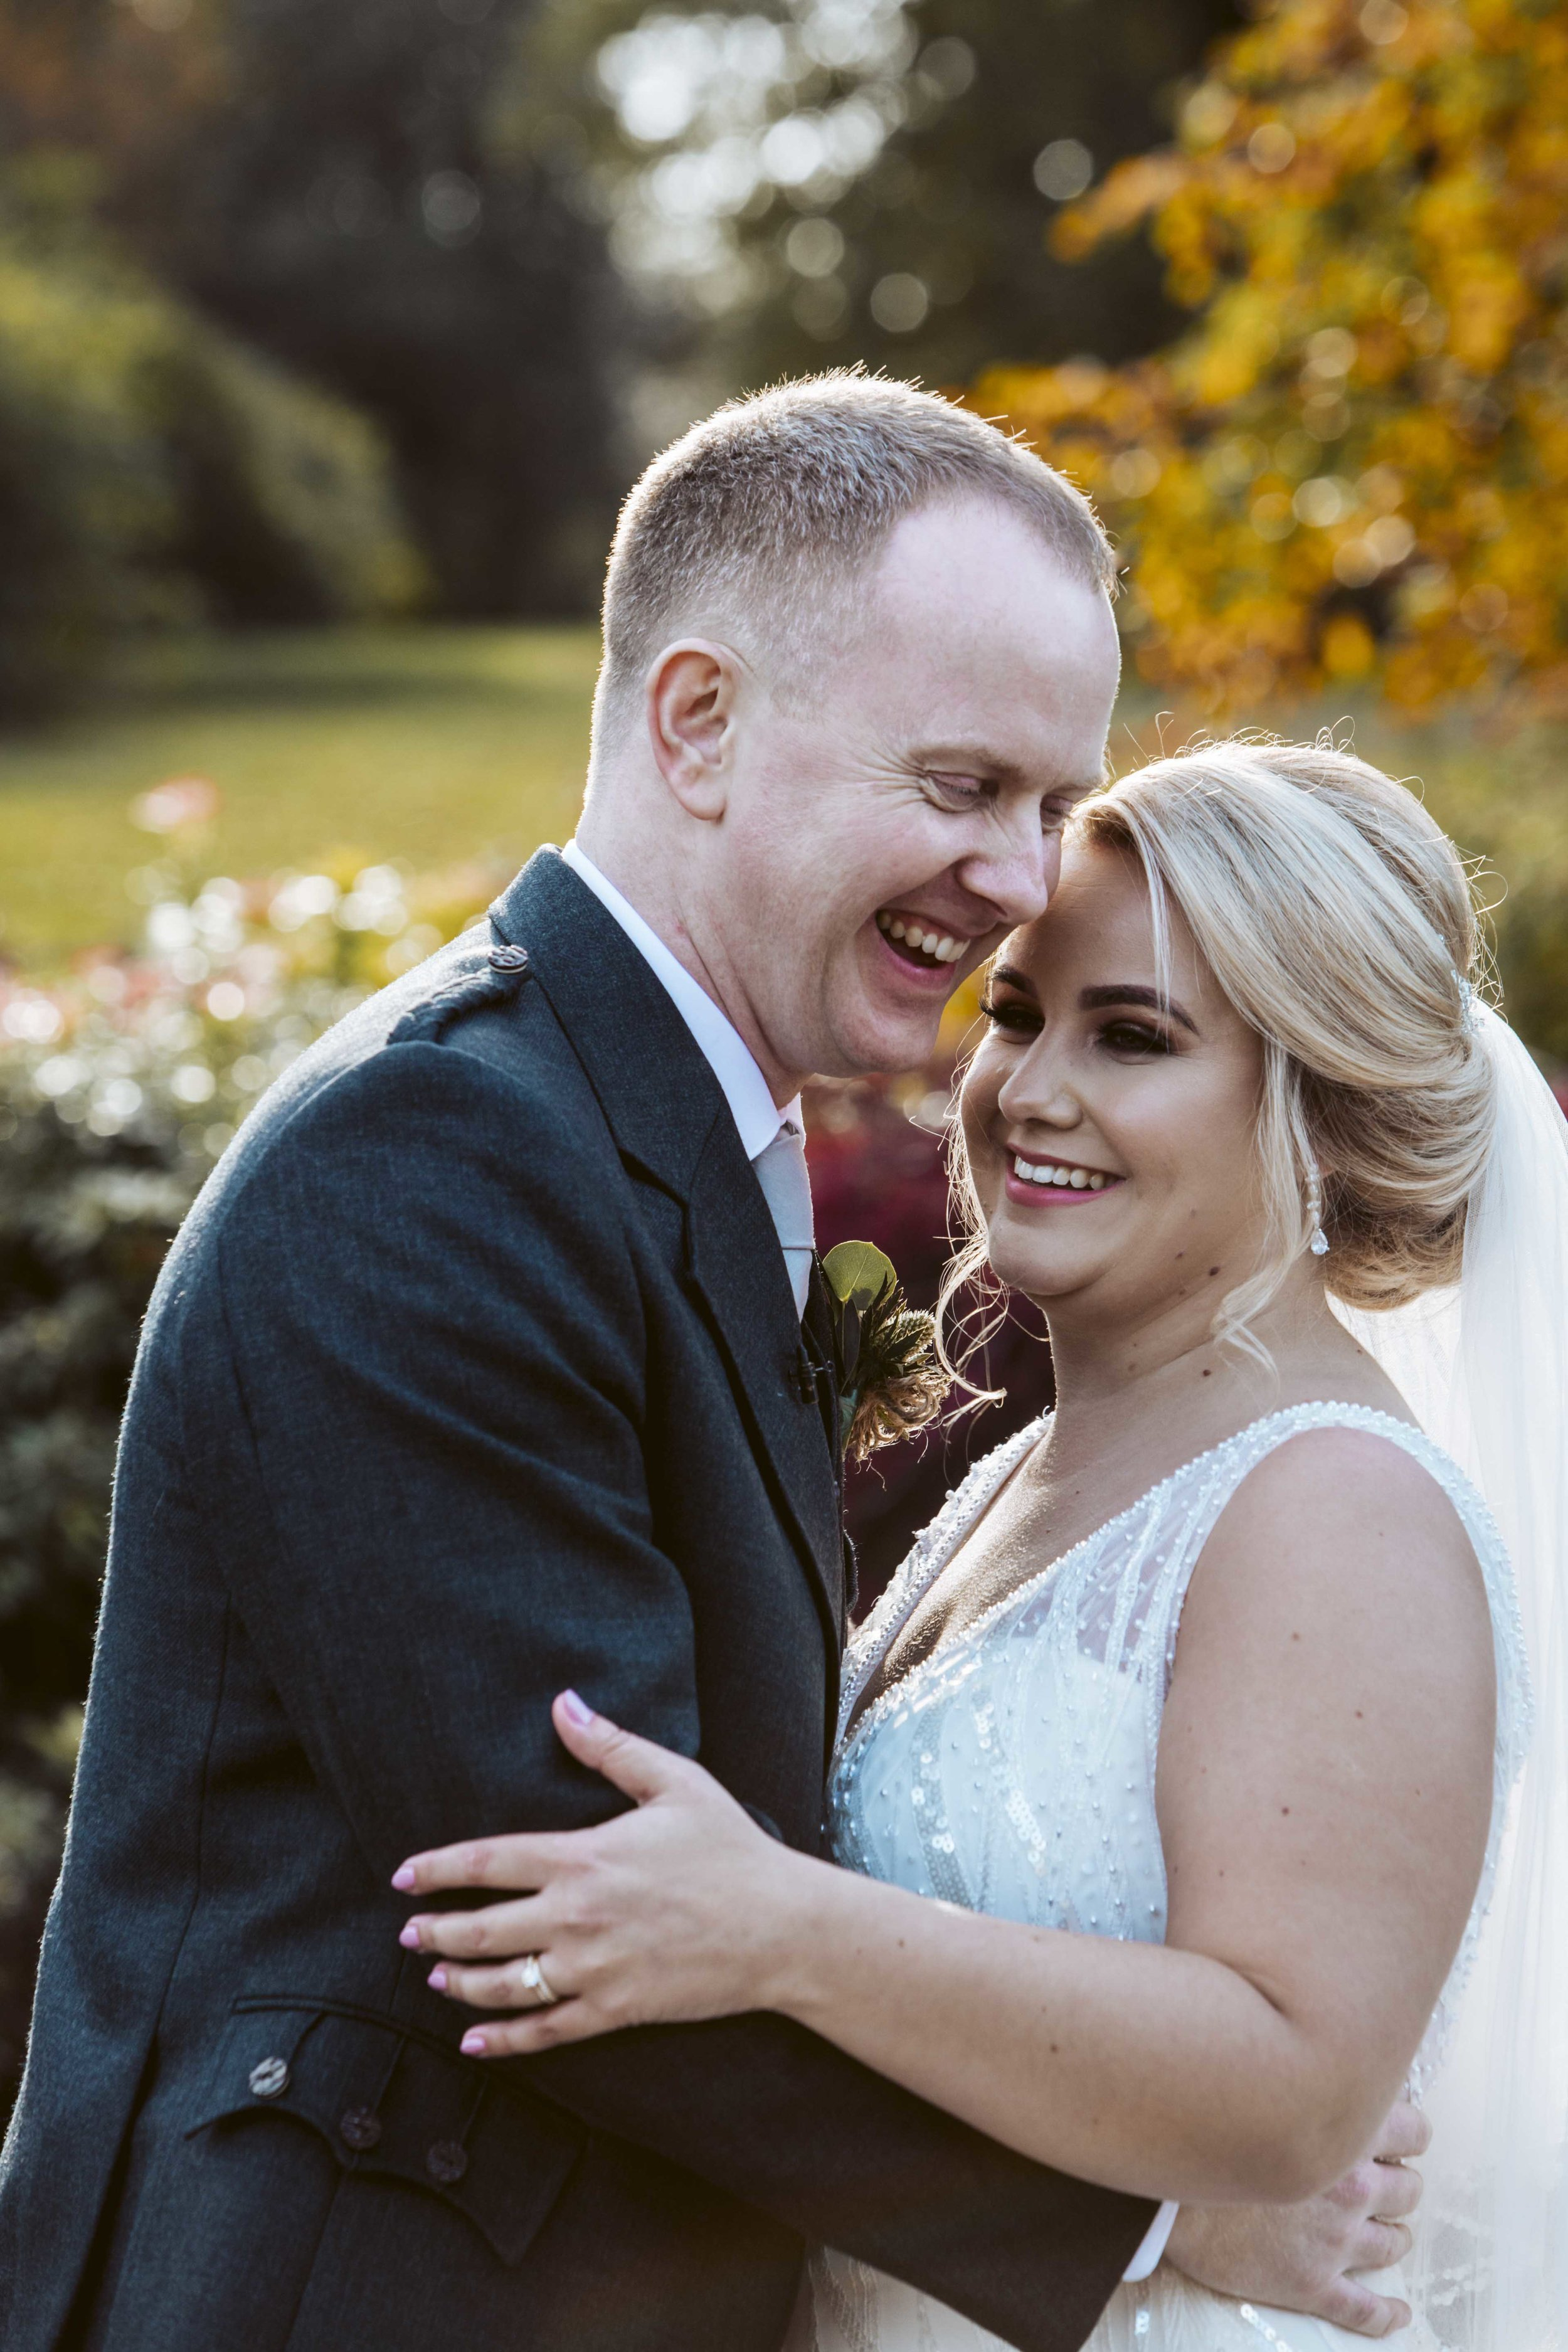 Mar Hall Wedding 2018, Haminsh & Emma McEwan 34.JPG